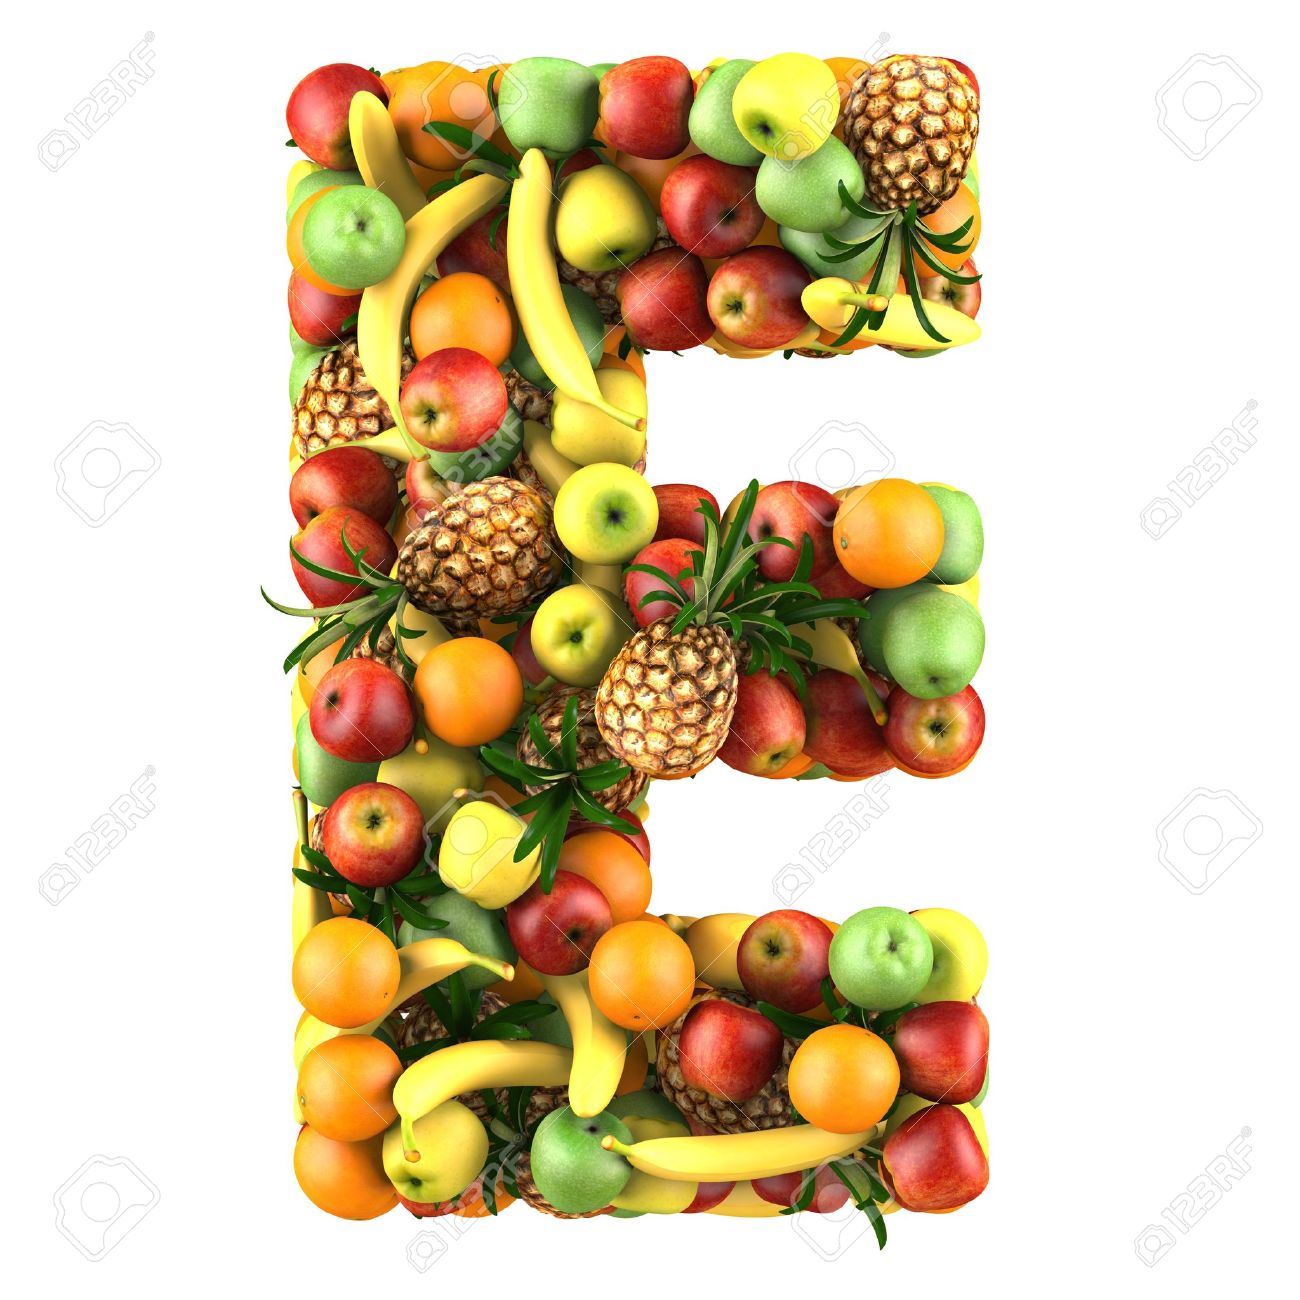 Letter E Made Fruits Isolated A White Stock Picture